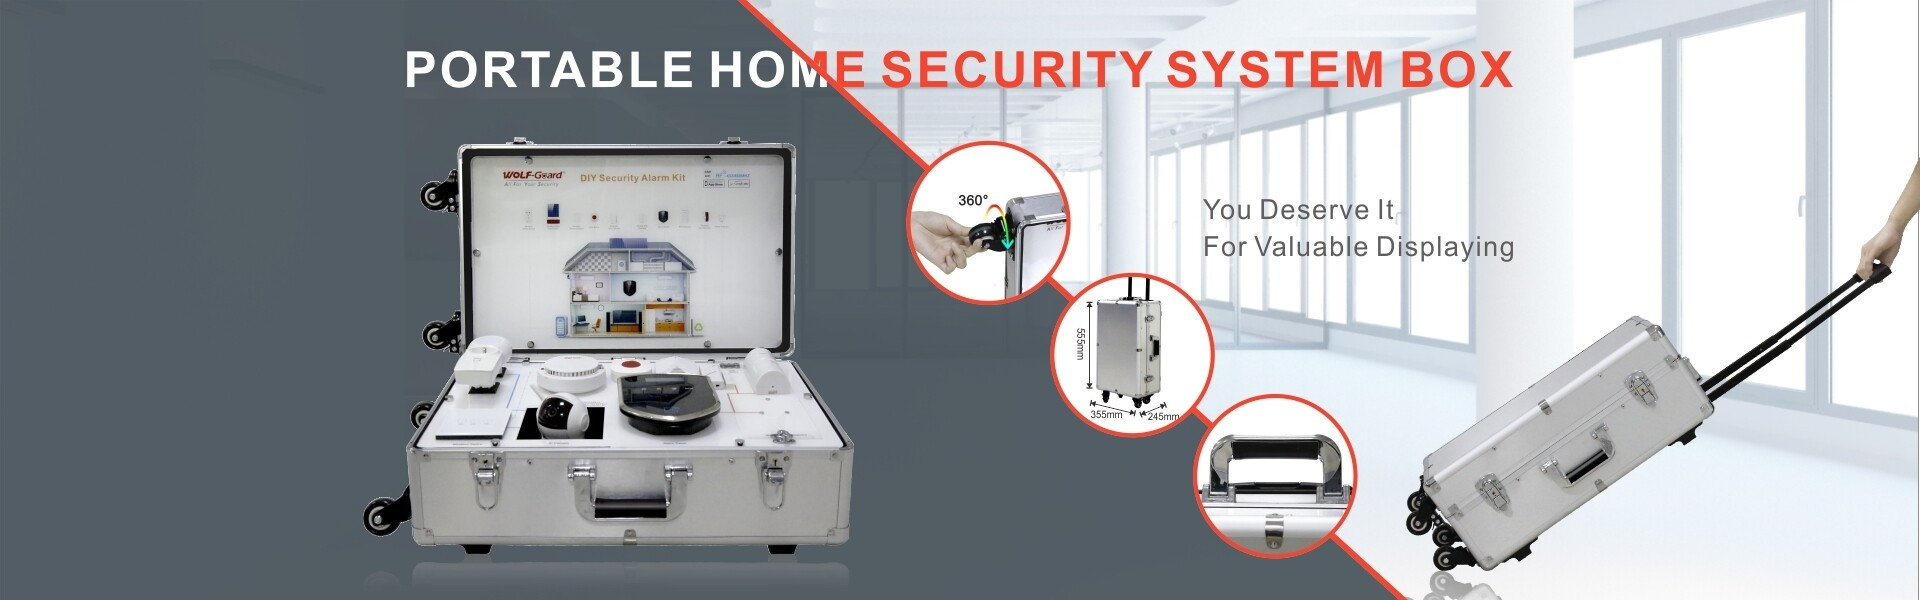 Portable Home Security Alarm System Demo Kit